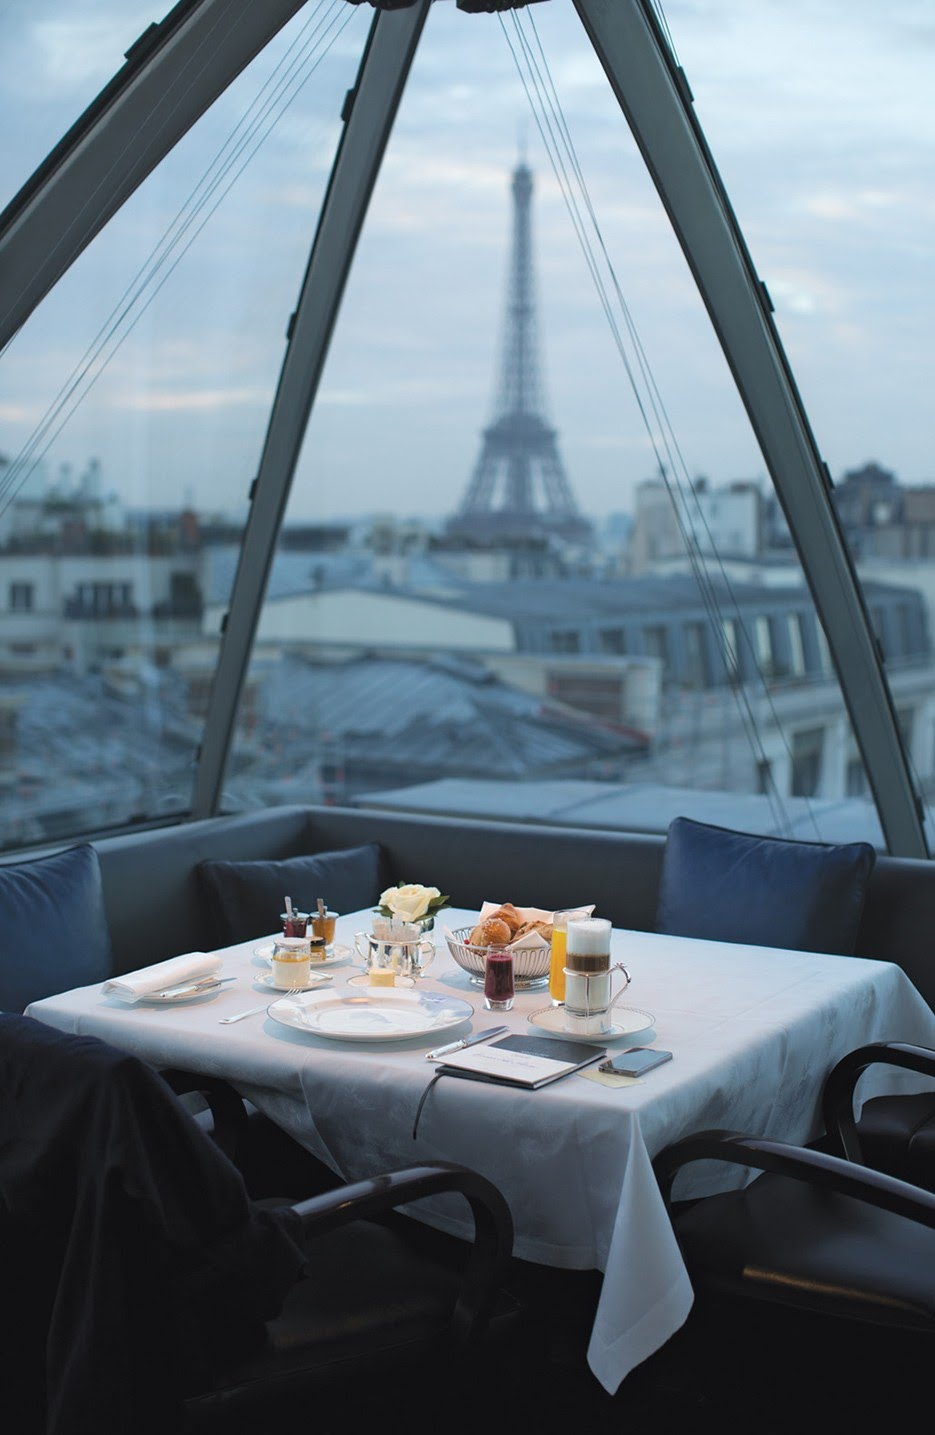 Weekday Wanderlust | Wine With a View: Two Restaurants in Paris with the Most Romantic Views